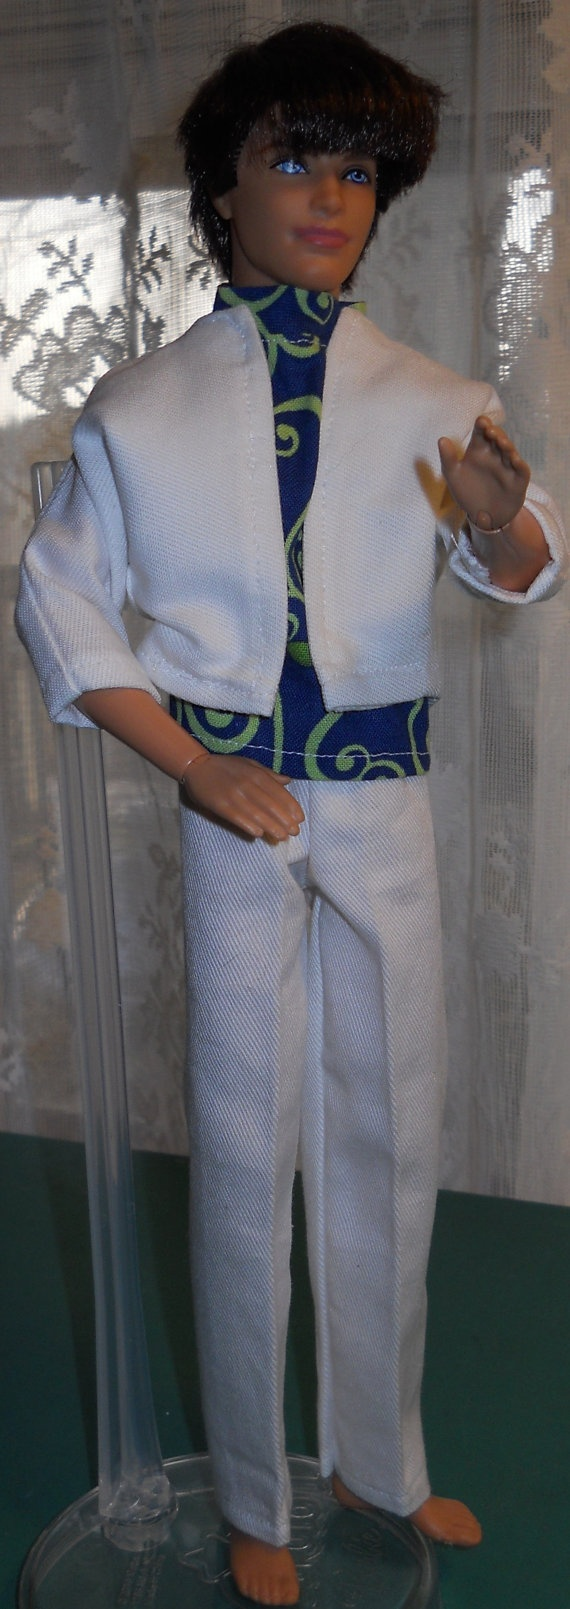 Handmade Ken 3 piece outfit by AuntieLousCrafts on Etsy, $10.00